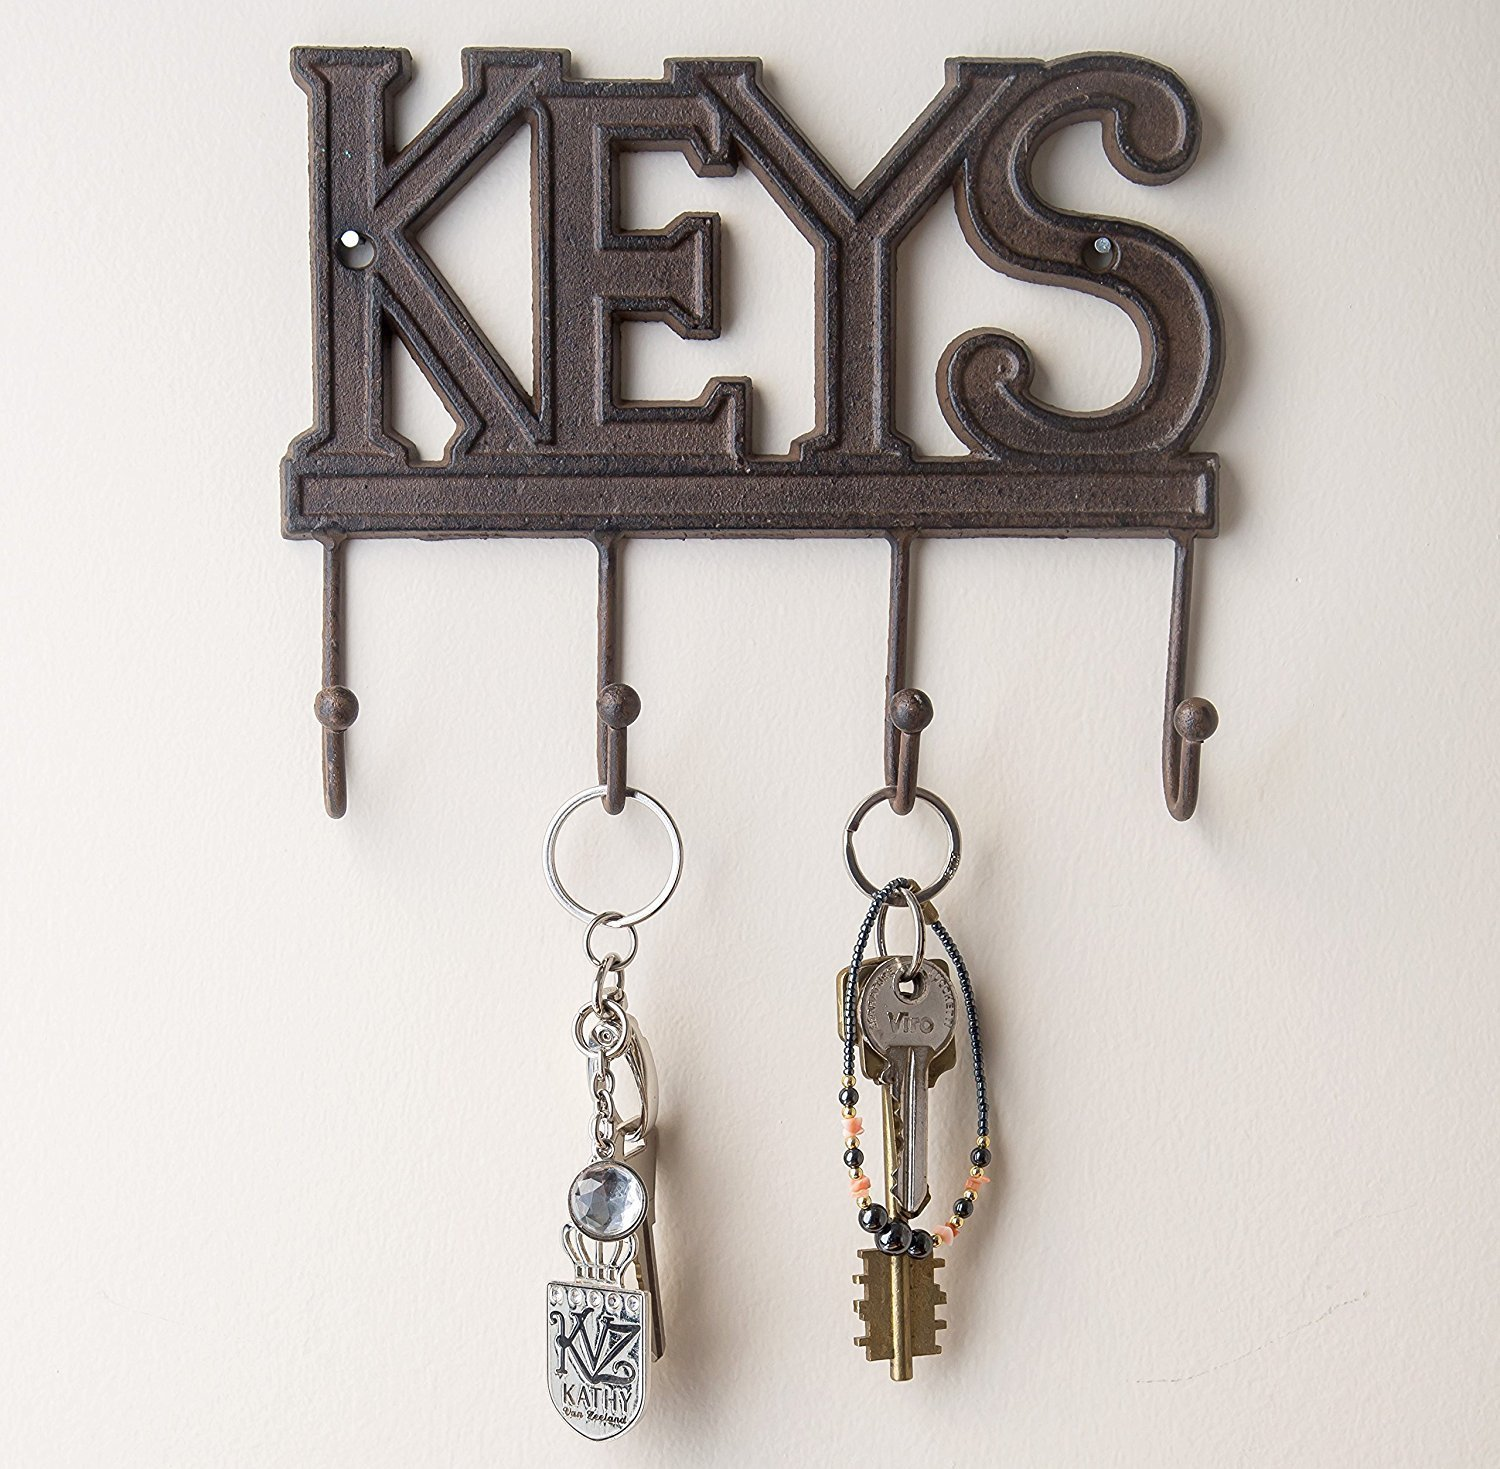 Key Holder - Keys - Wall Mounted Key Hook - Rustic Western Cast Iron Key Hanger - Decorative Key Organizer Rack with 4 Hooks - With Screws and Anchors - 6x8 inches - by Comfify (Rust Brown)